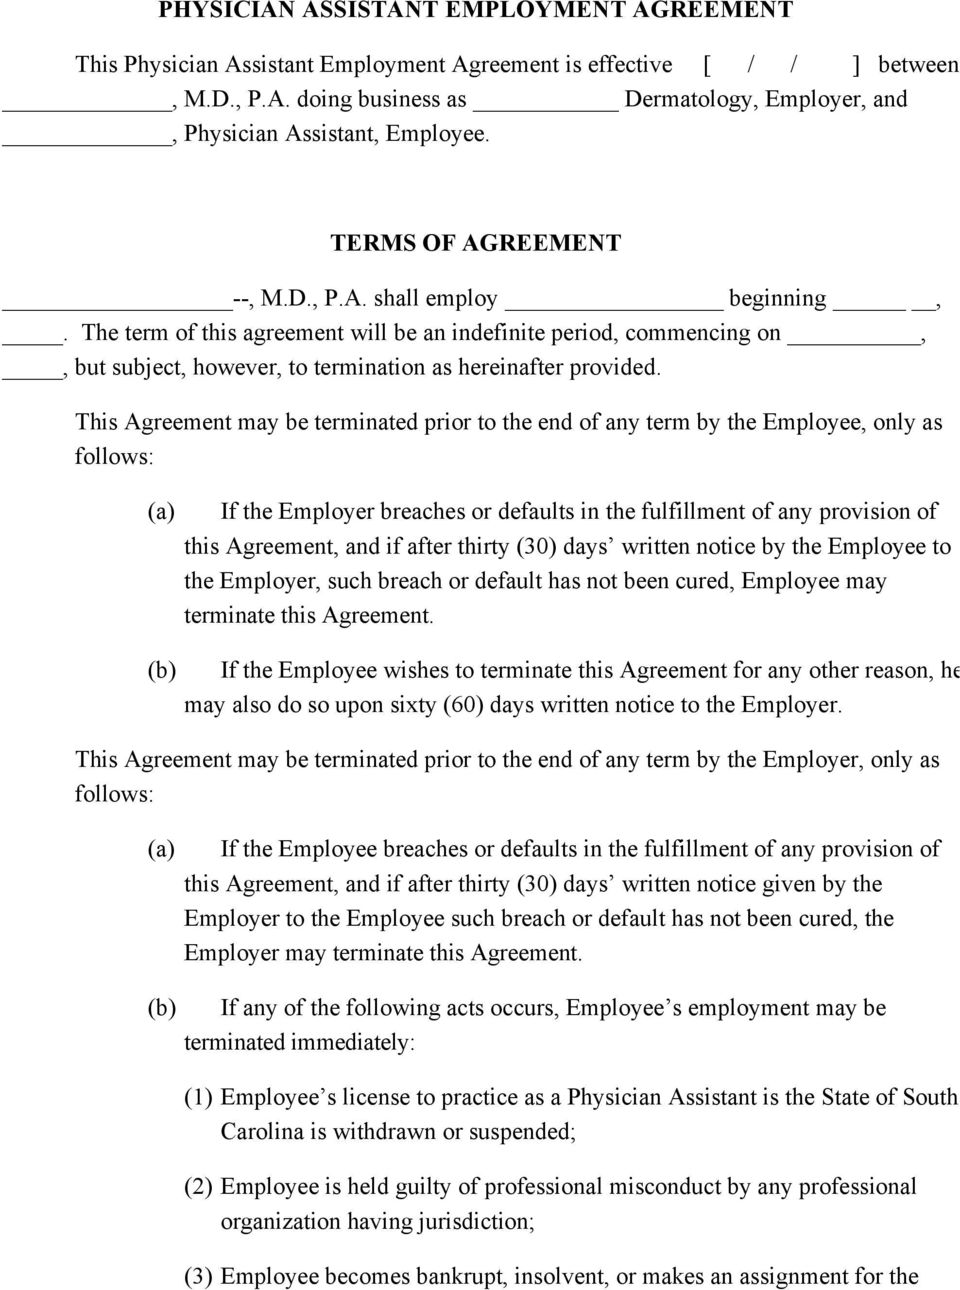 Physician Employment Agreement Career Development Employment